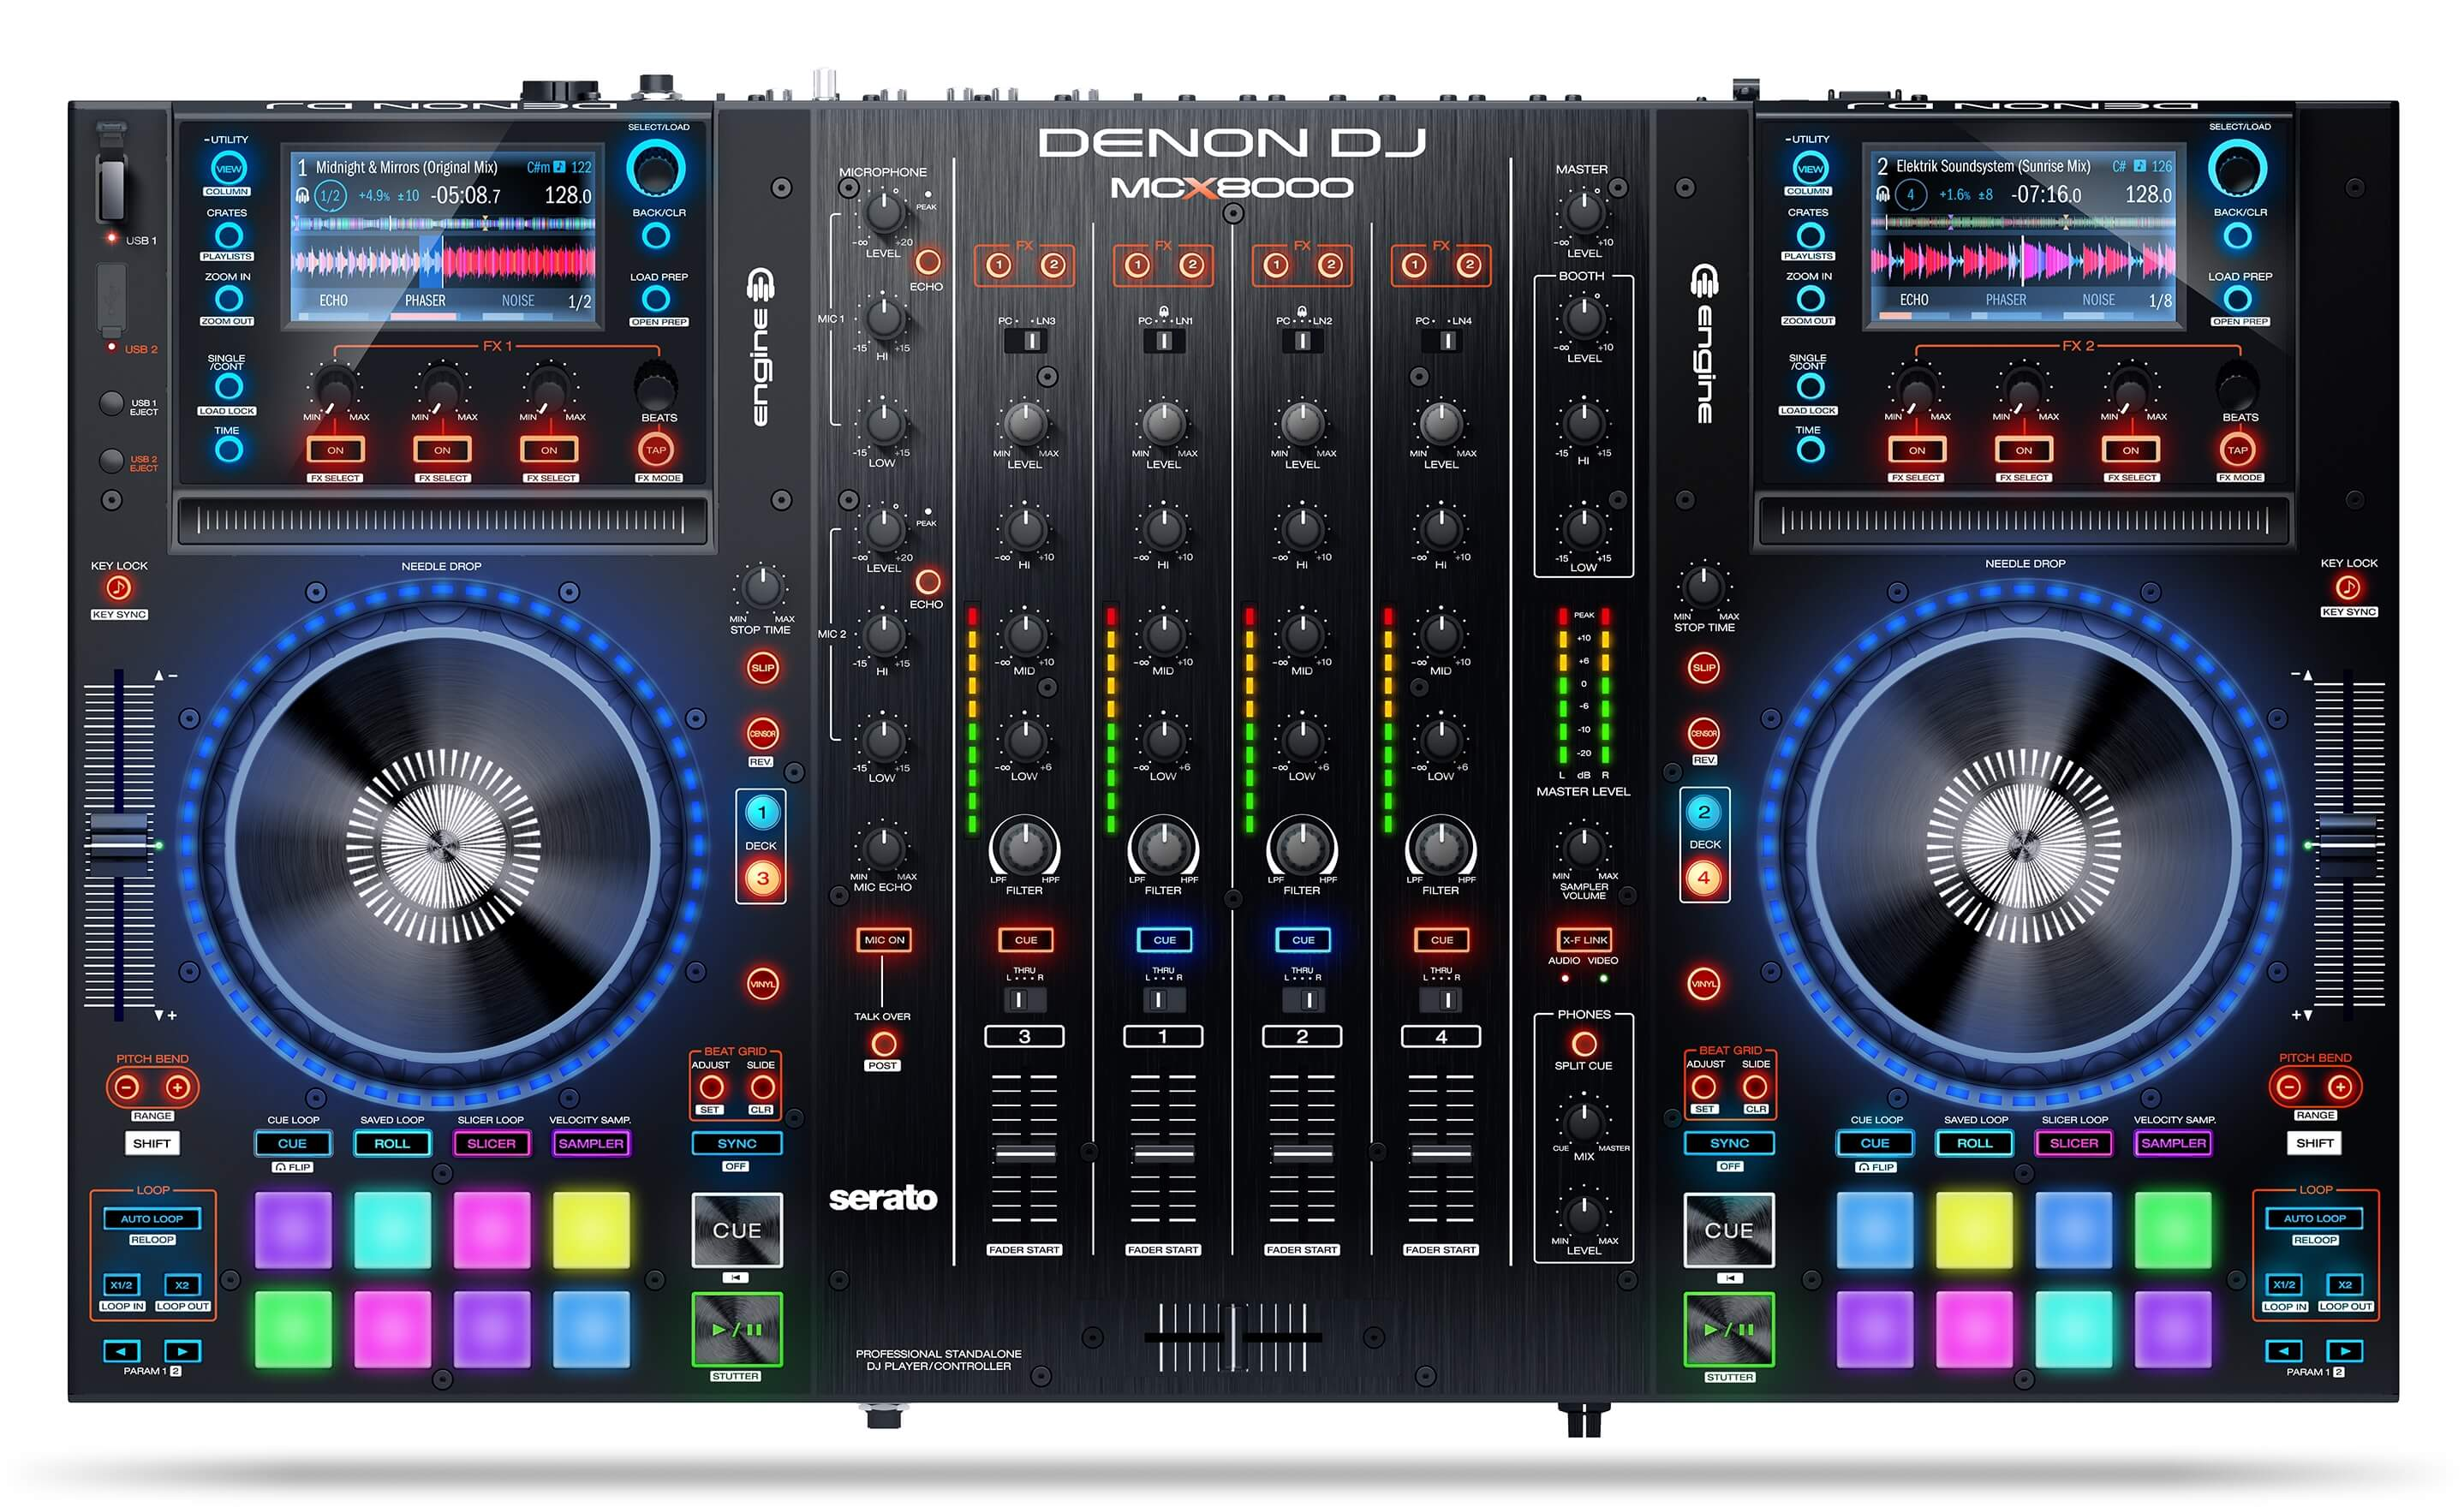 BUILD YOUR OWN DJ CONTROLLER